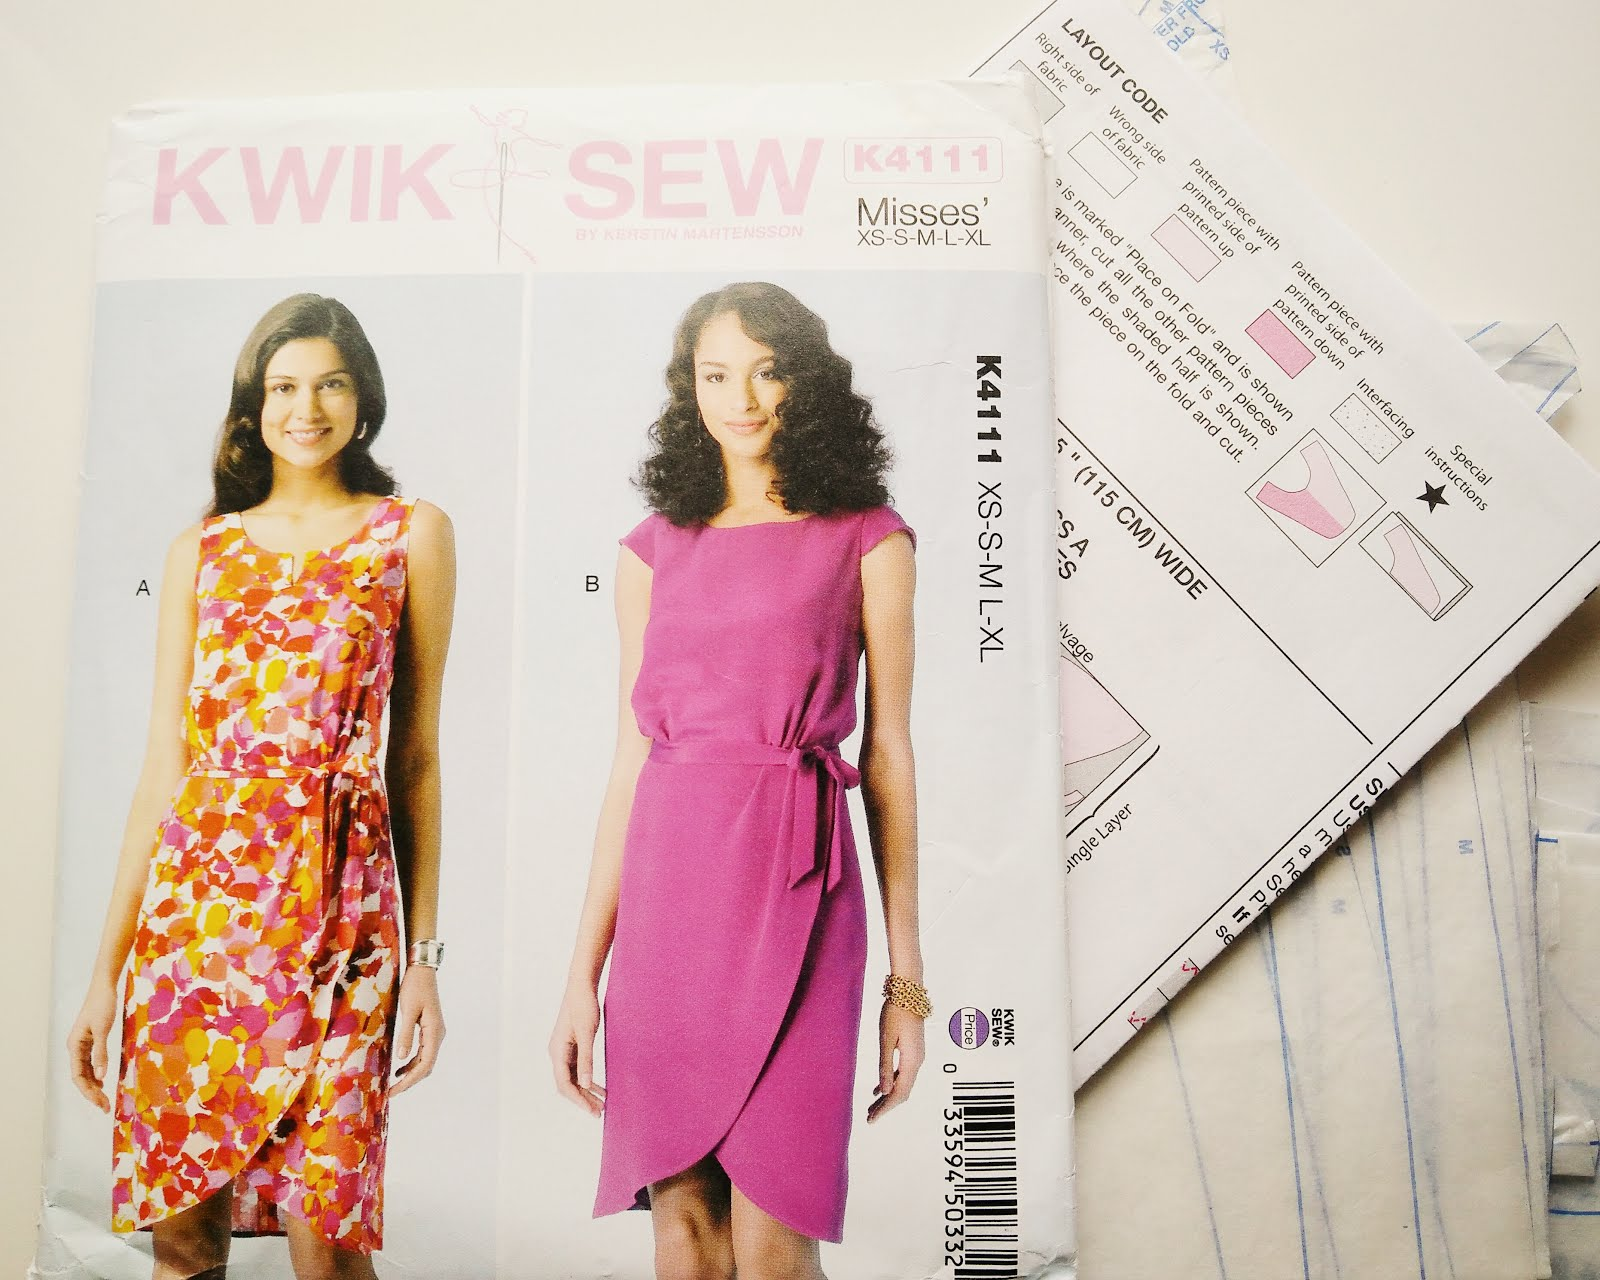 Kwik Sew K4111 pattern review